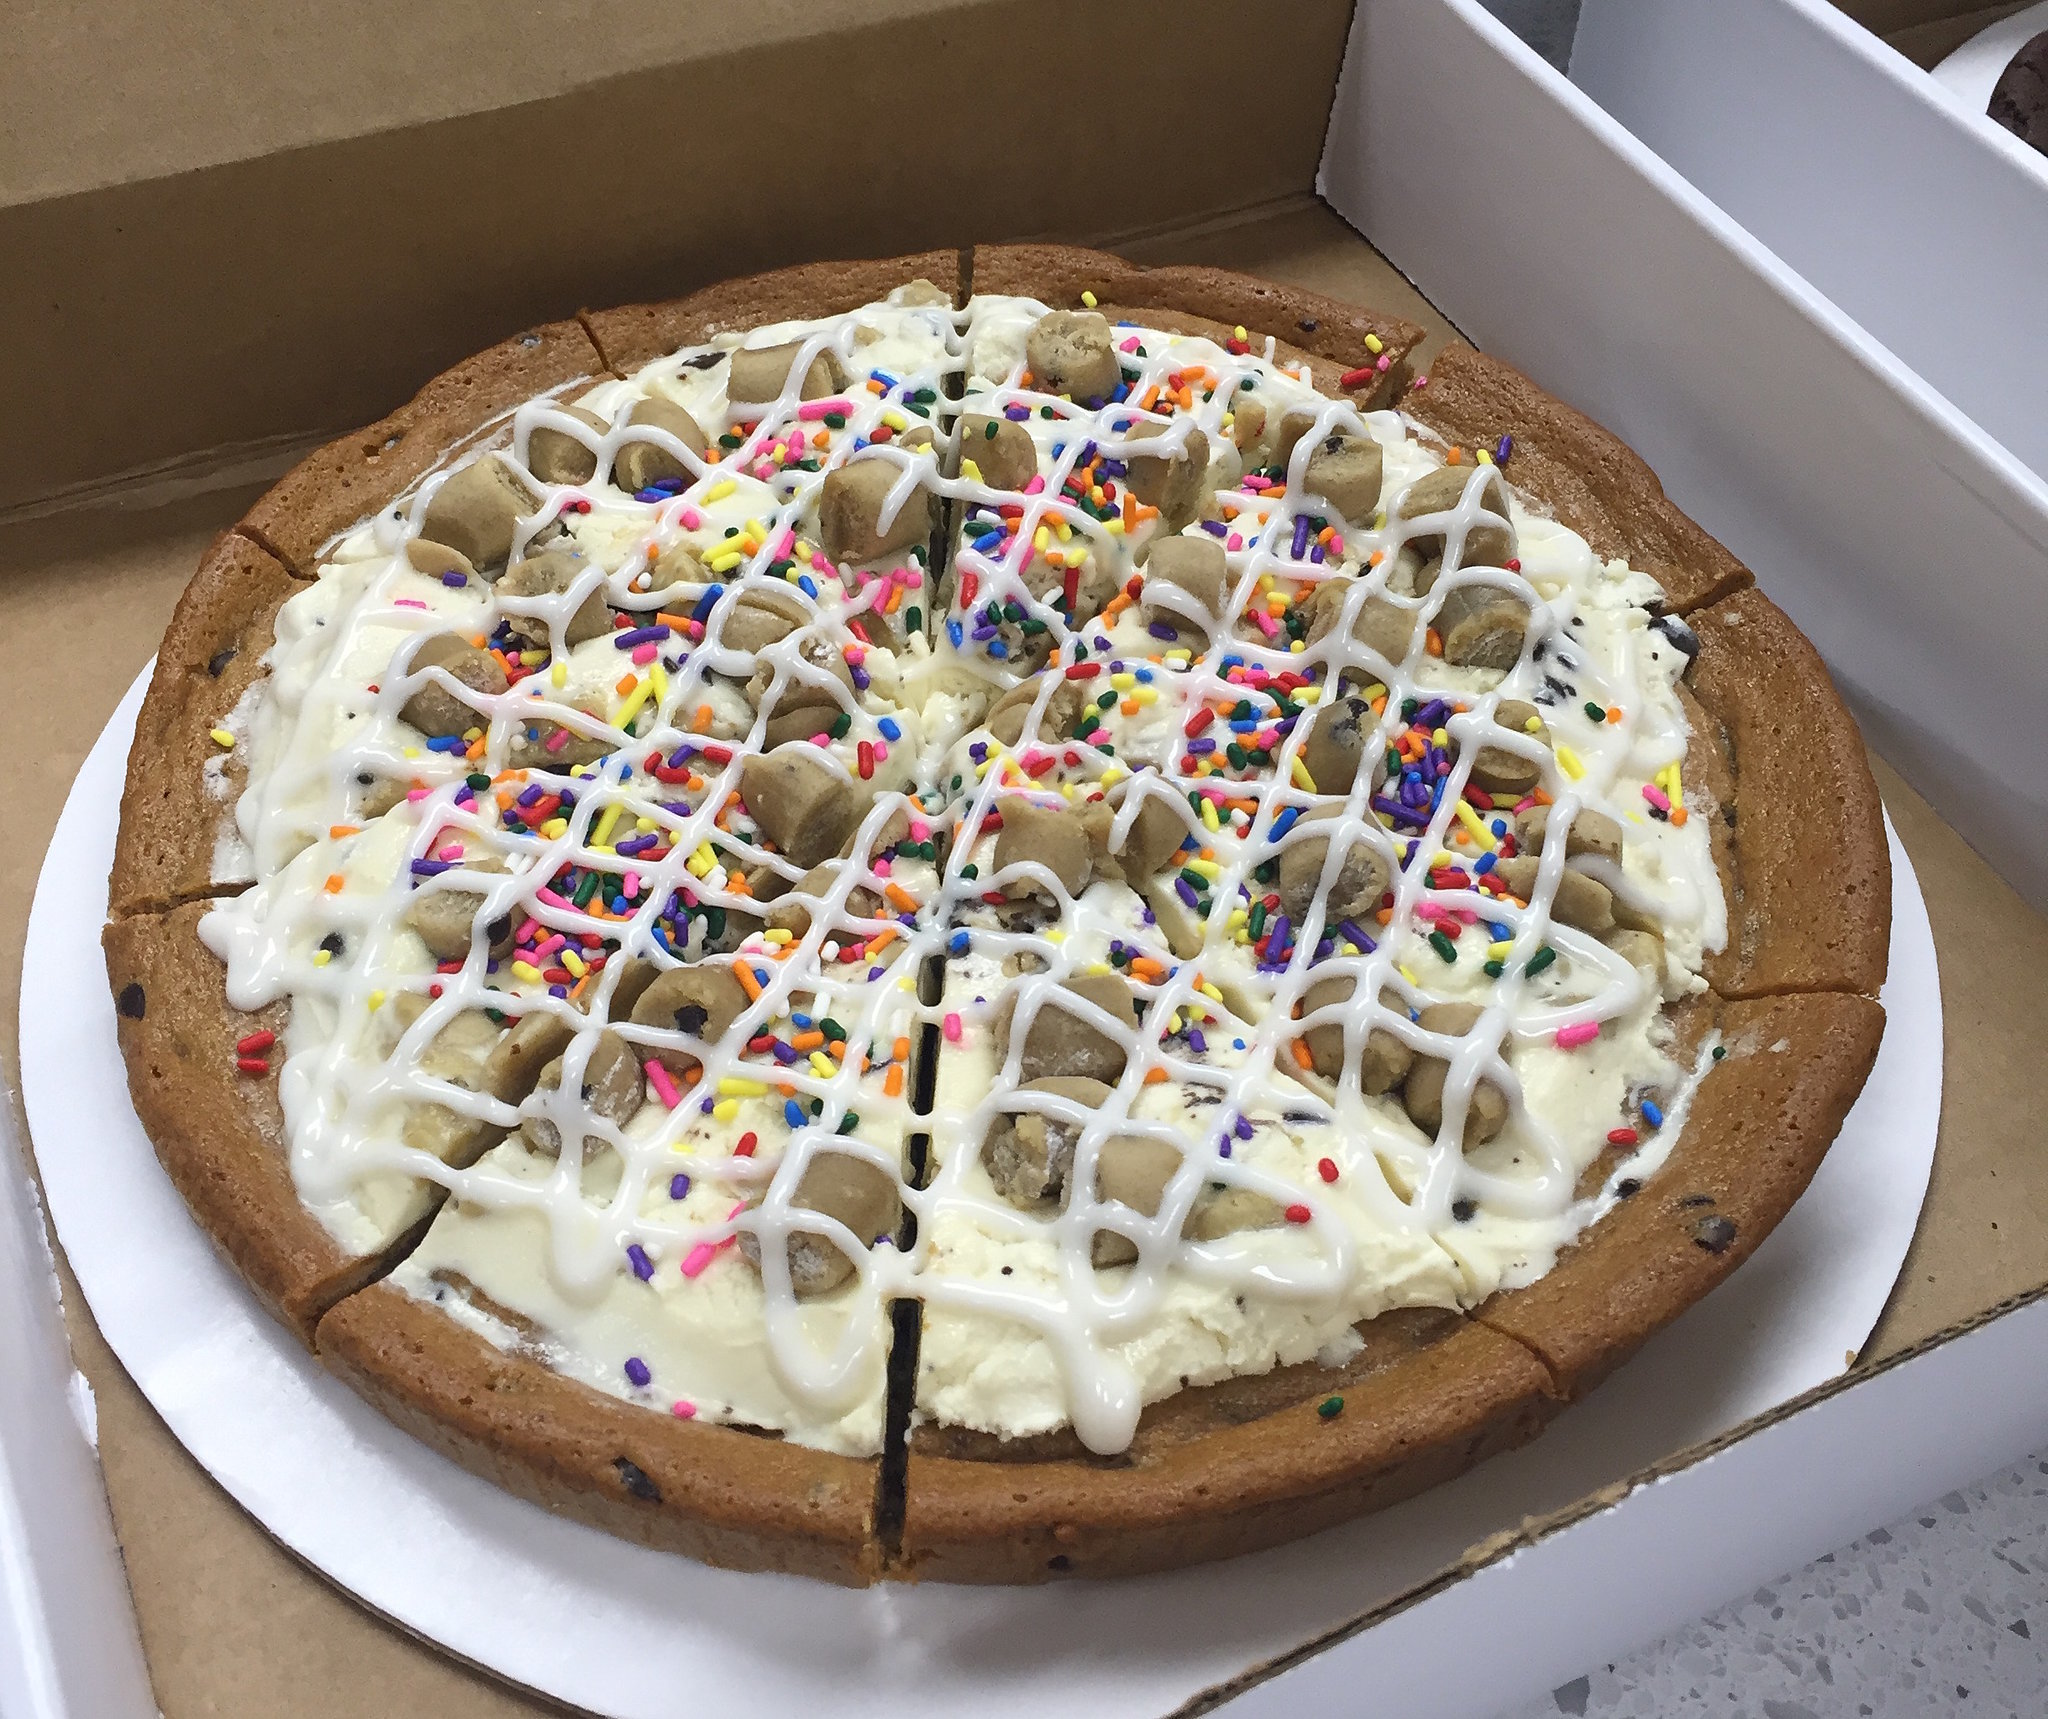 Seemly Polar You May Remember Polar Pizzas From Many Years Ago Andwonder Where Y Good News Coming New Products 2016 Popsugar Food Baskin Robbins Near Me Flavors Baskin Robbins Near Me Delivery nice food Baskinrobbins Near Me